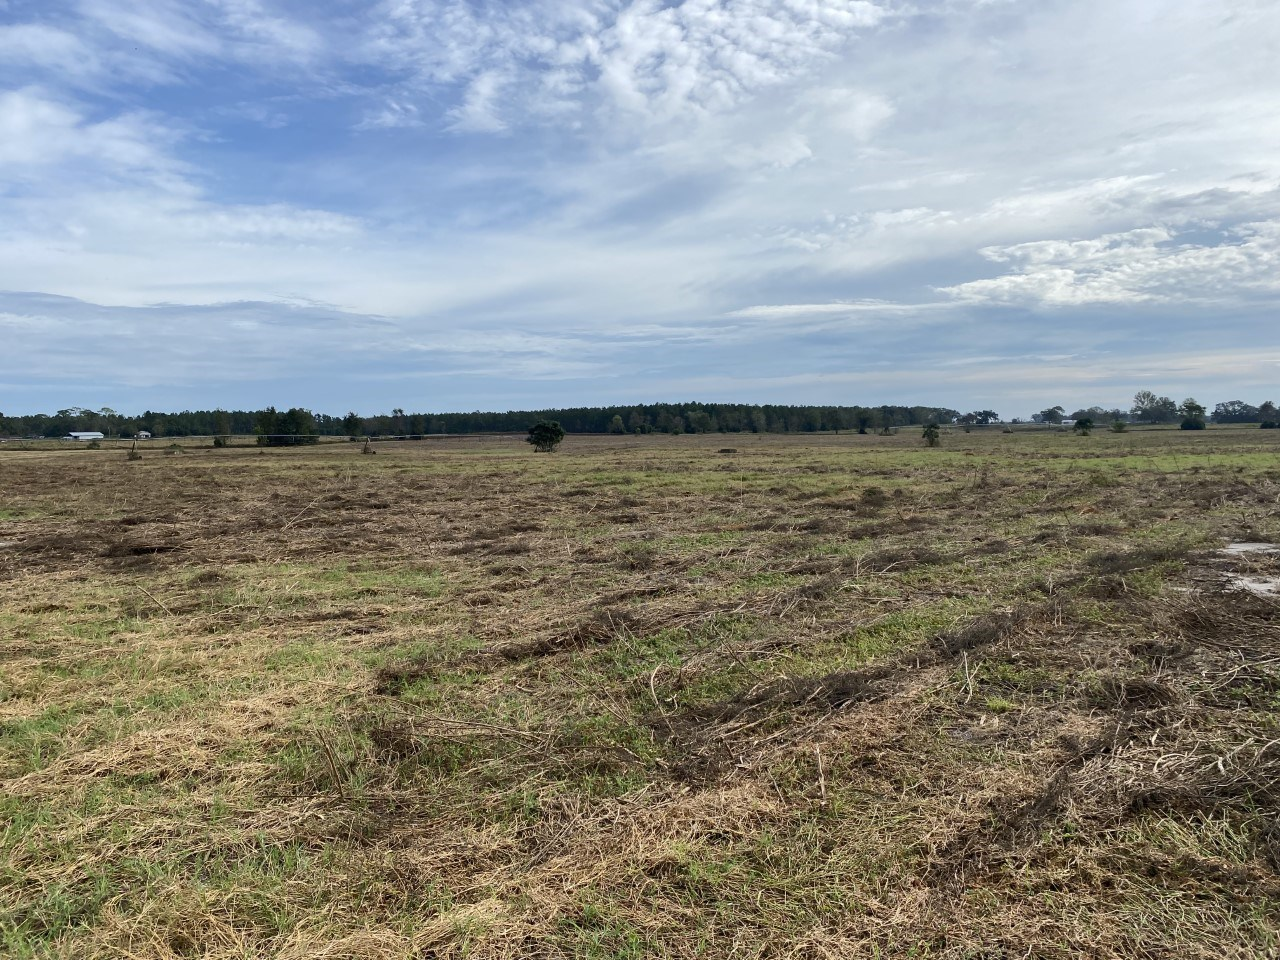 20 ACRE PASTURE FARMLAND FOR ONLY $140,000!!!!